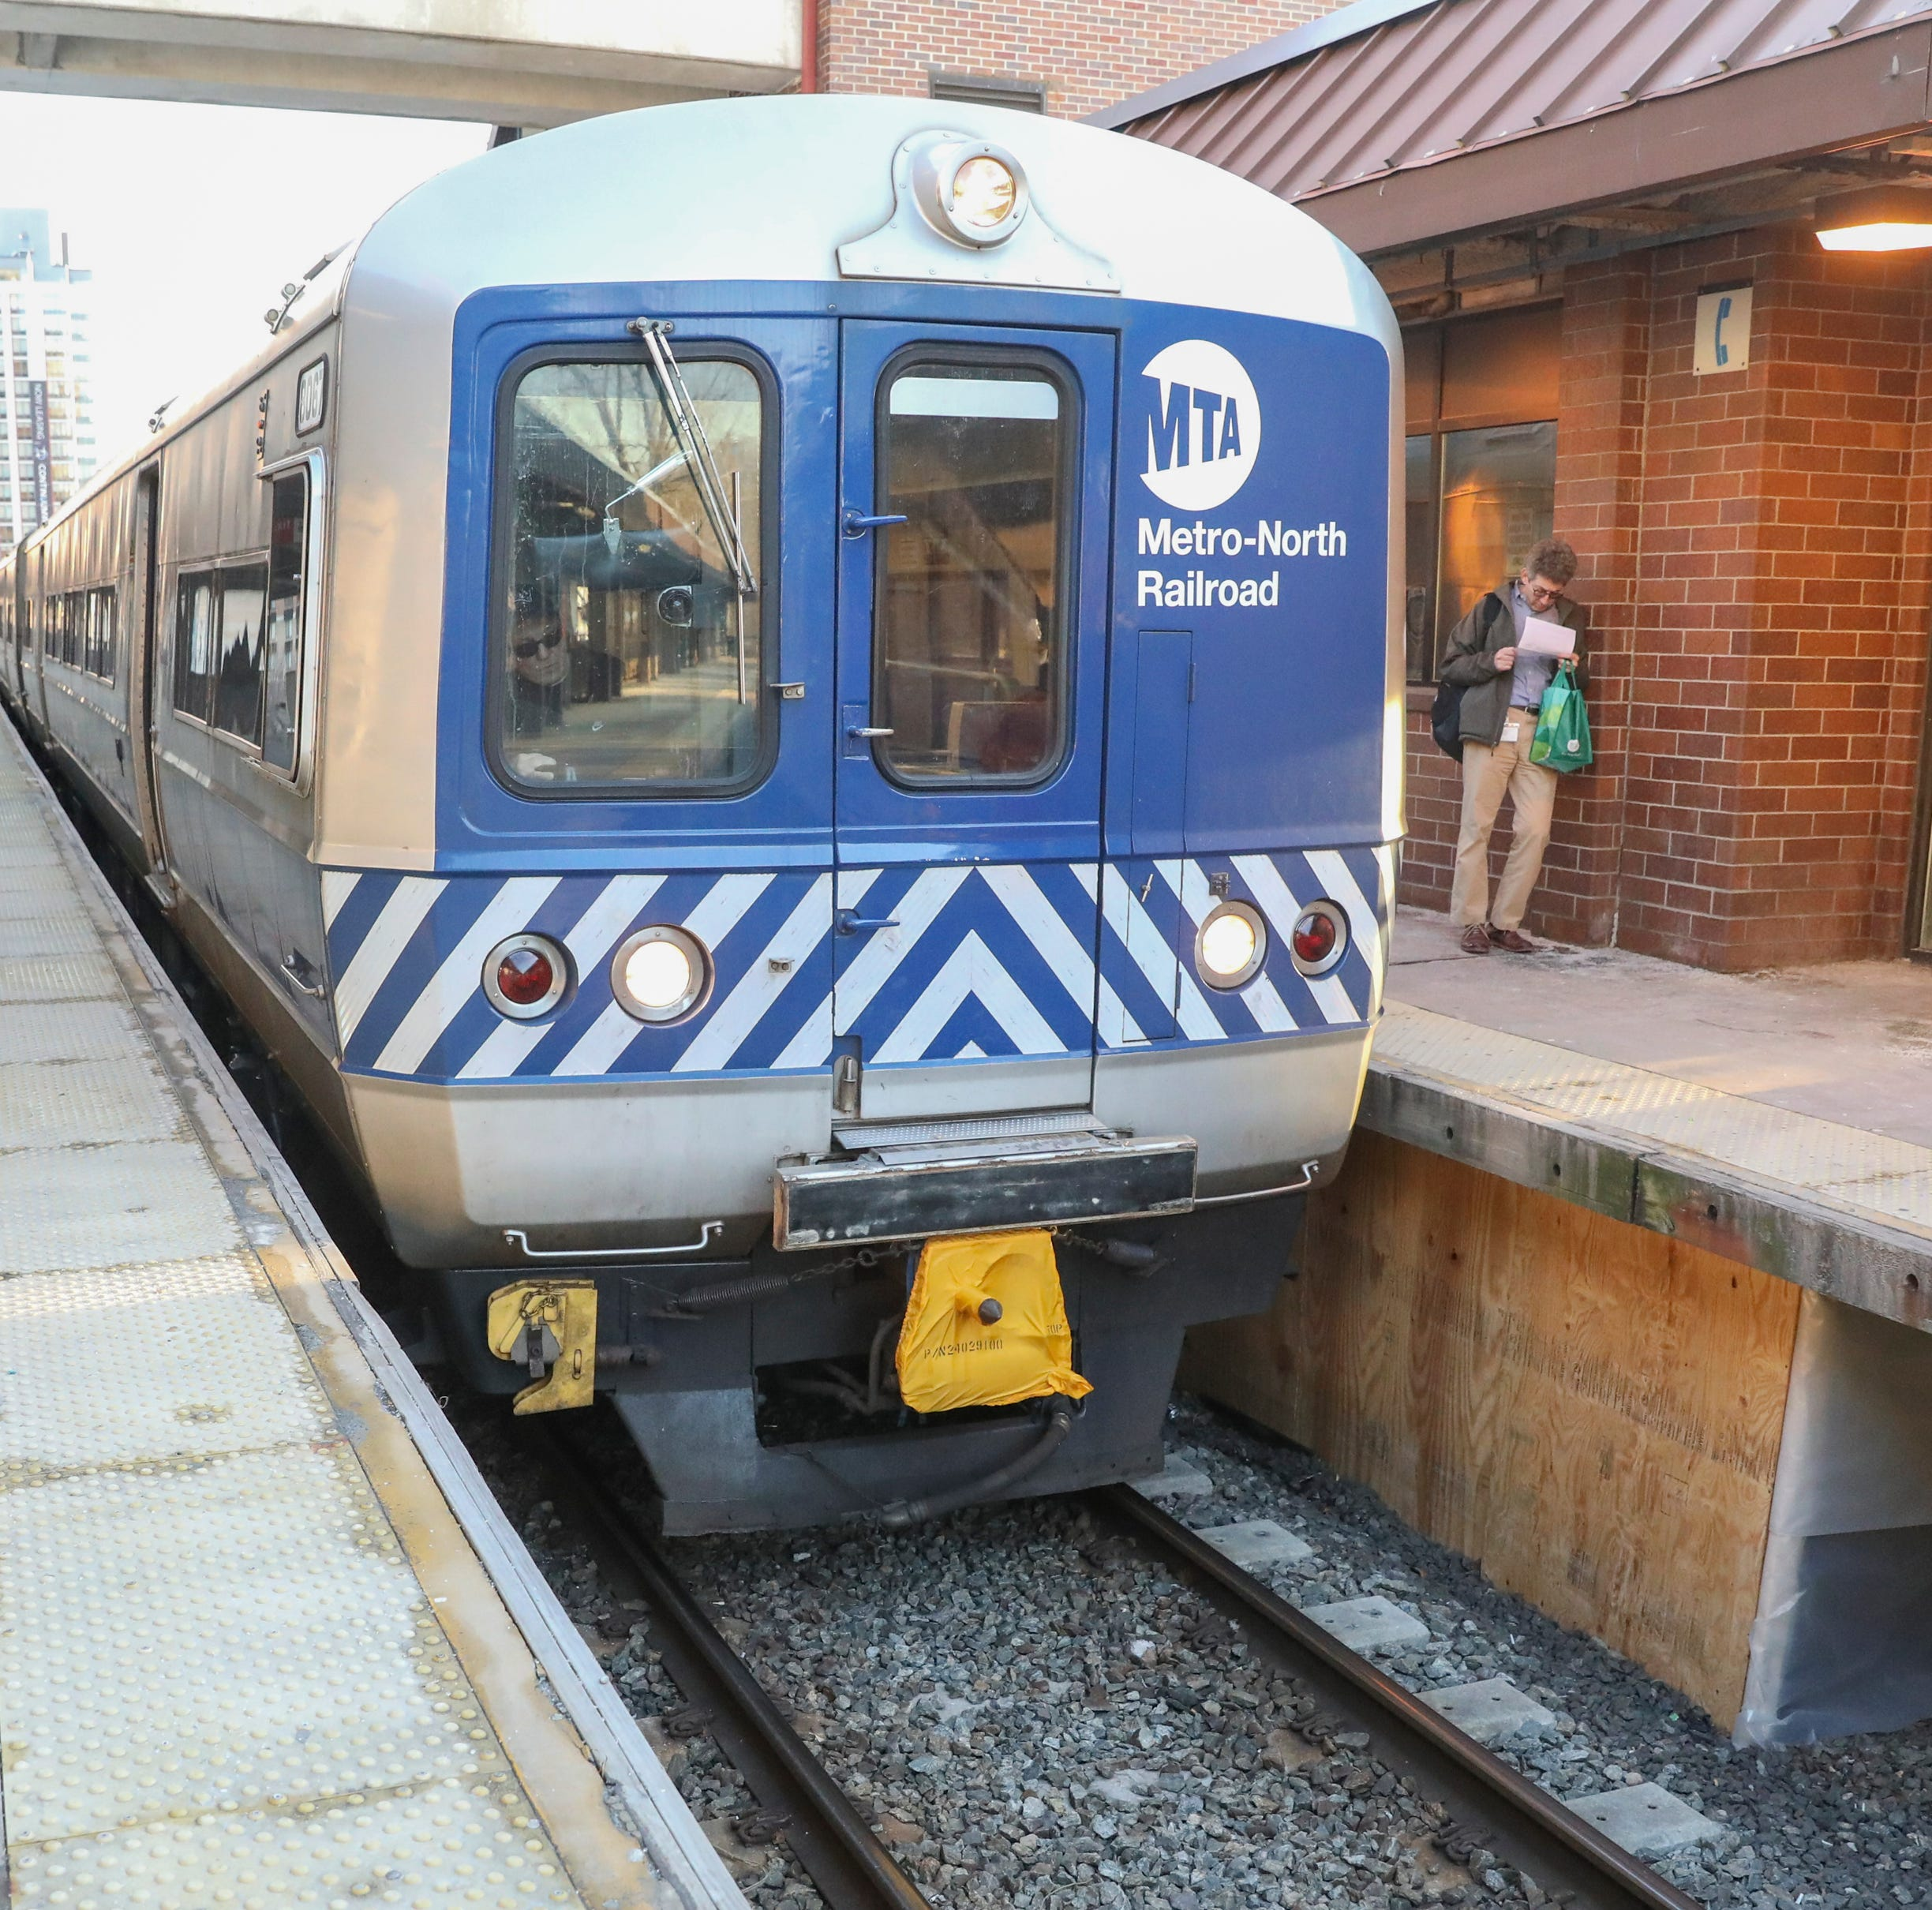 Metro-North Railroad trains delayed during morning commute